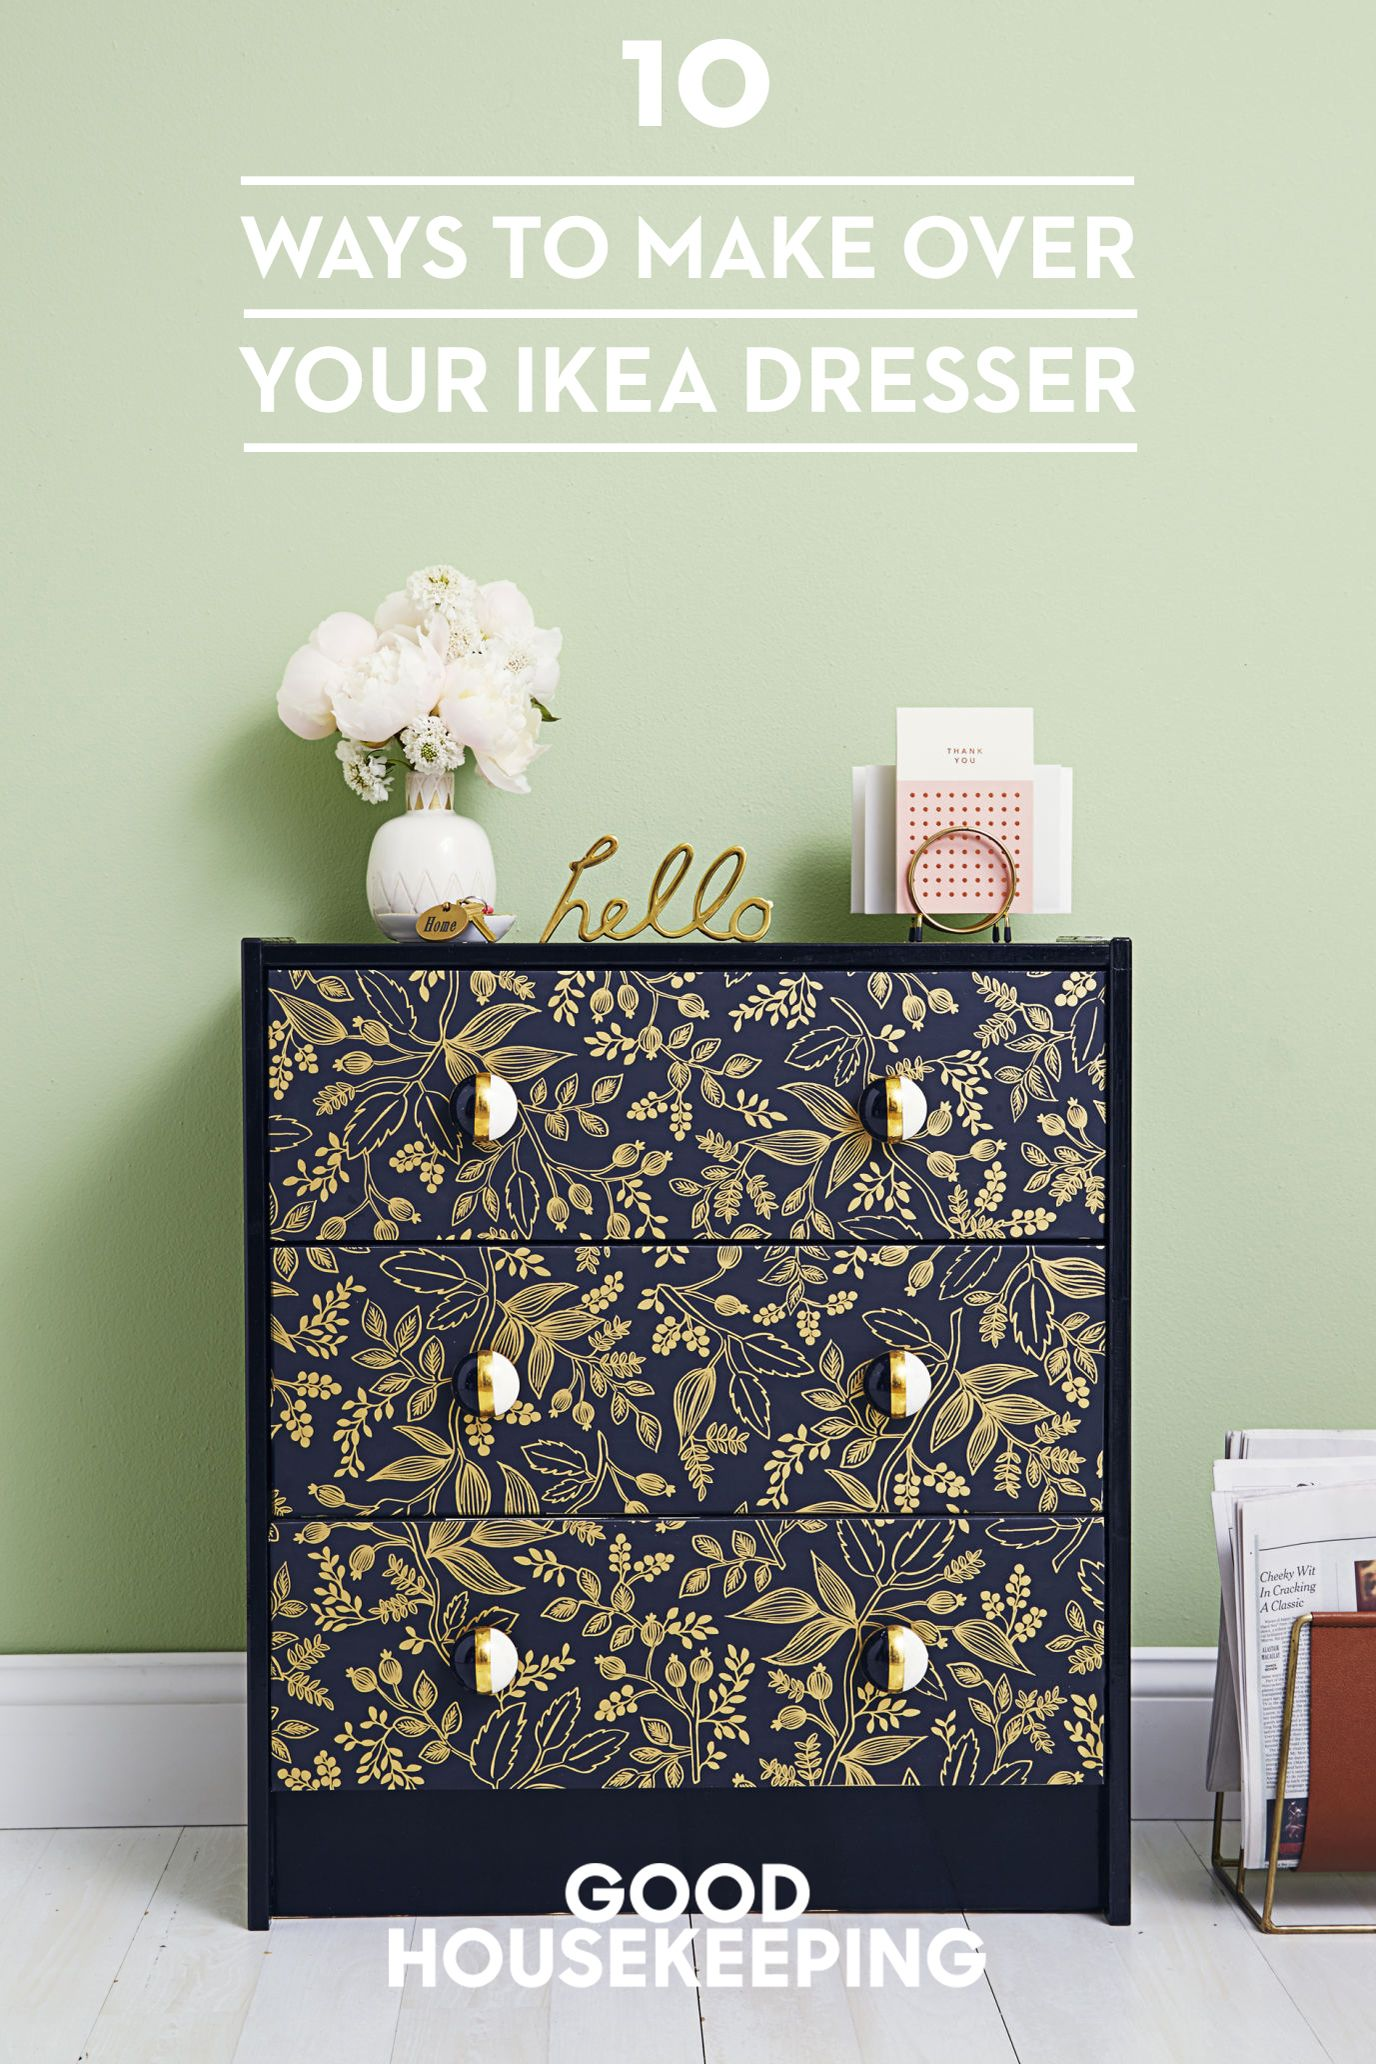 Joob Meubilair 10 Ways To Make Over Your Favorite Ikea Dresser Kasjes Opbergen